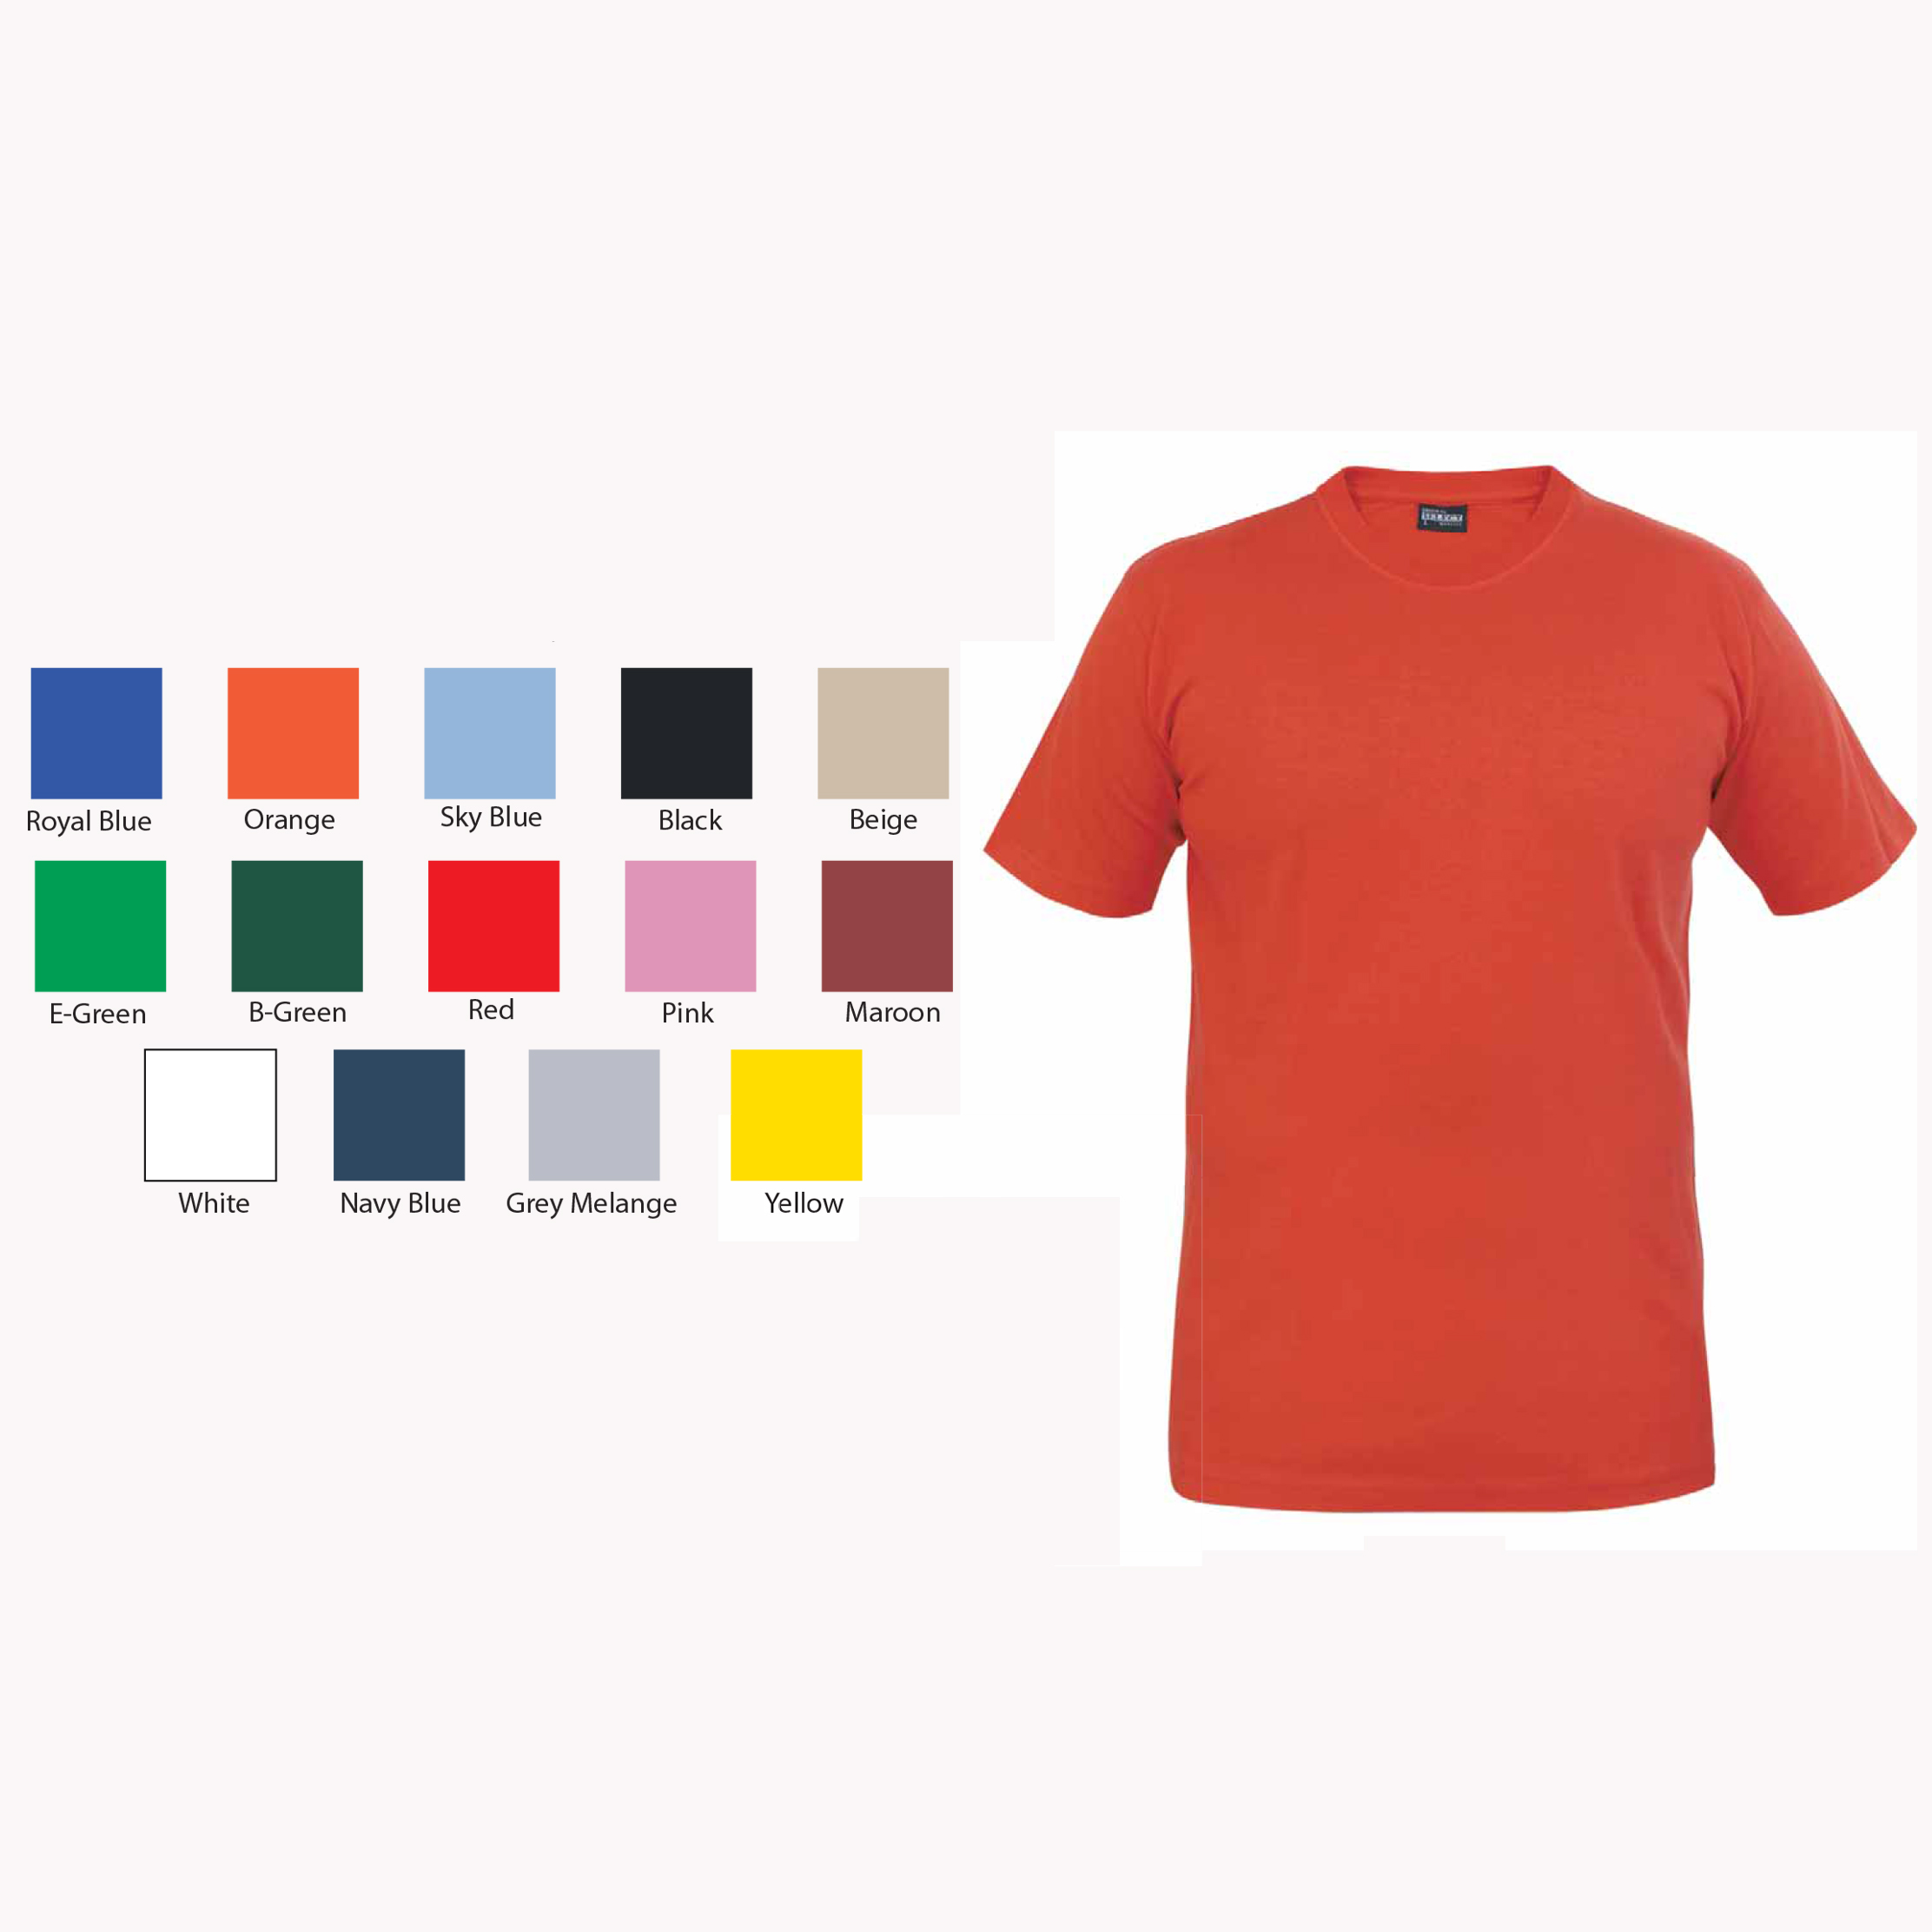 Economy rnt polo shirts brands gifts for T shirt printing and distribution